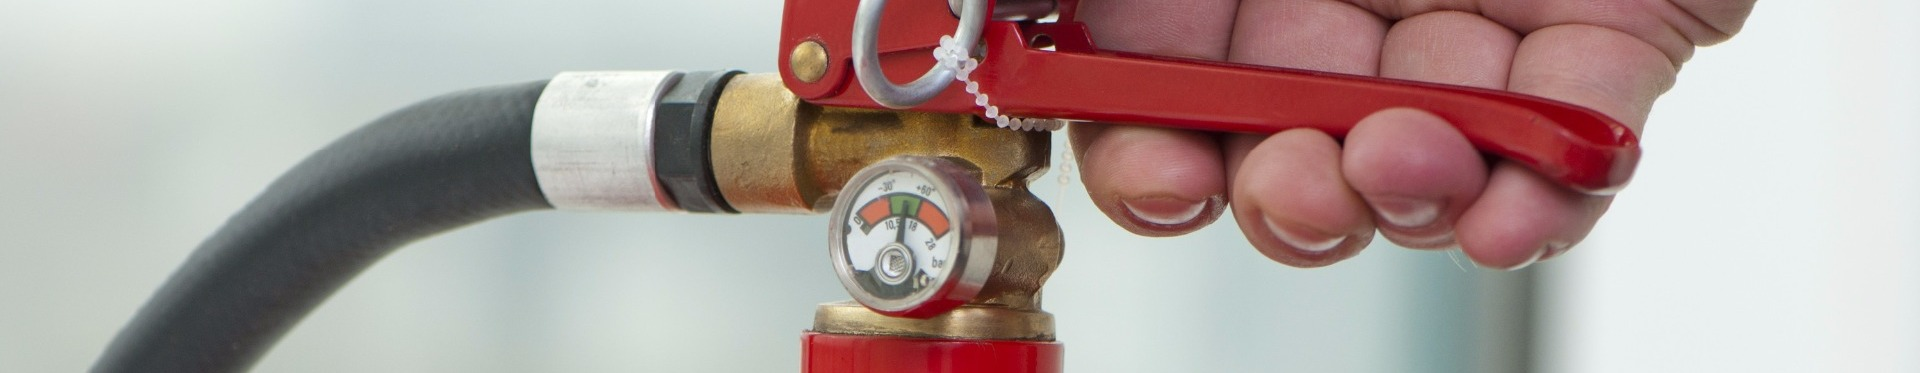 Midland Fire - Fire Extinguisher handle squeeze